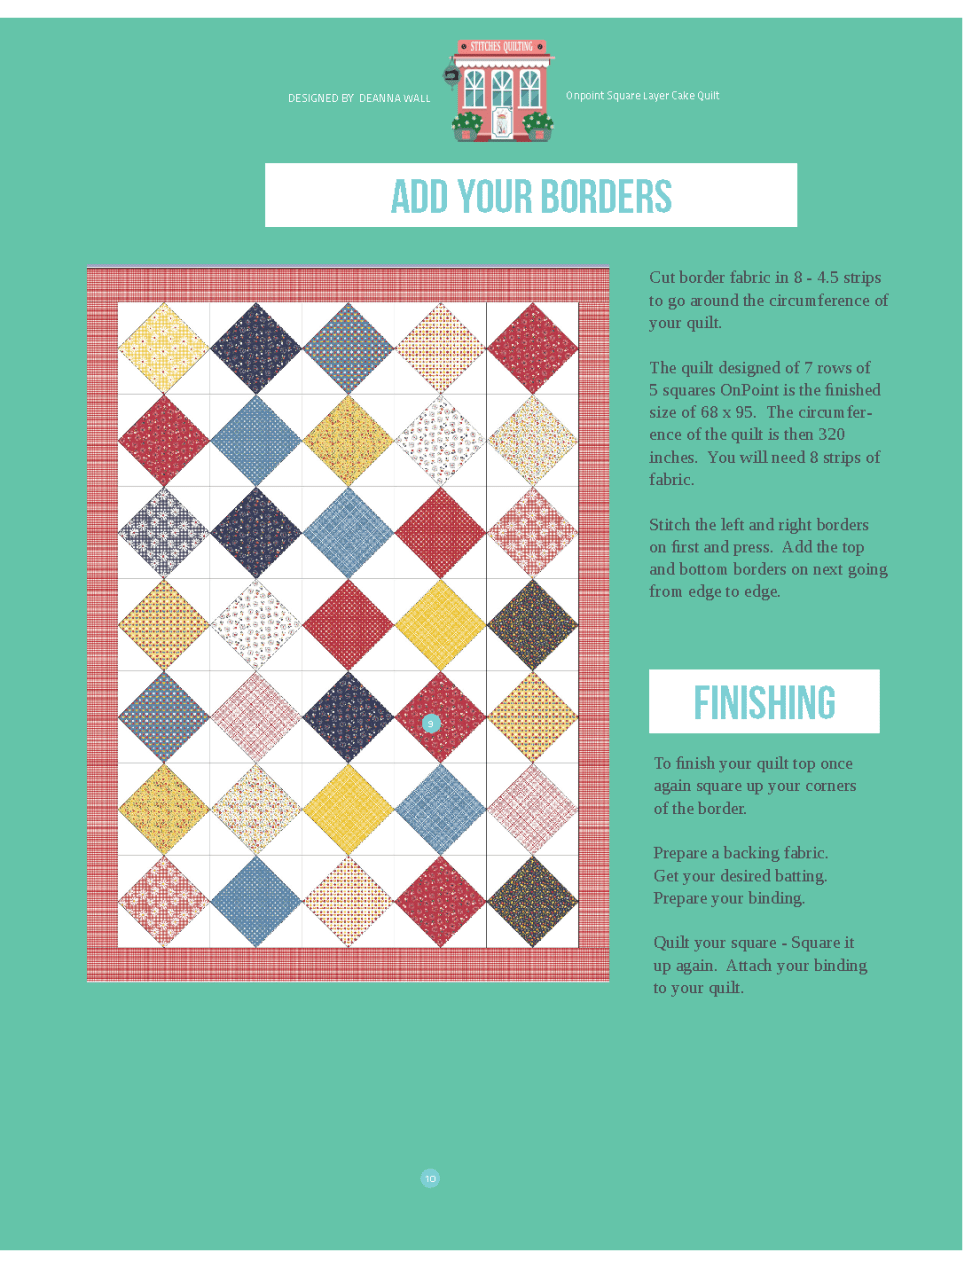 Onpoint Square Layer Cake Quilt Tutorial Free Pattern